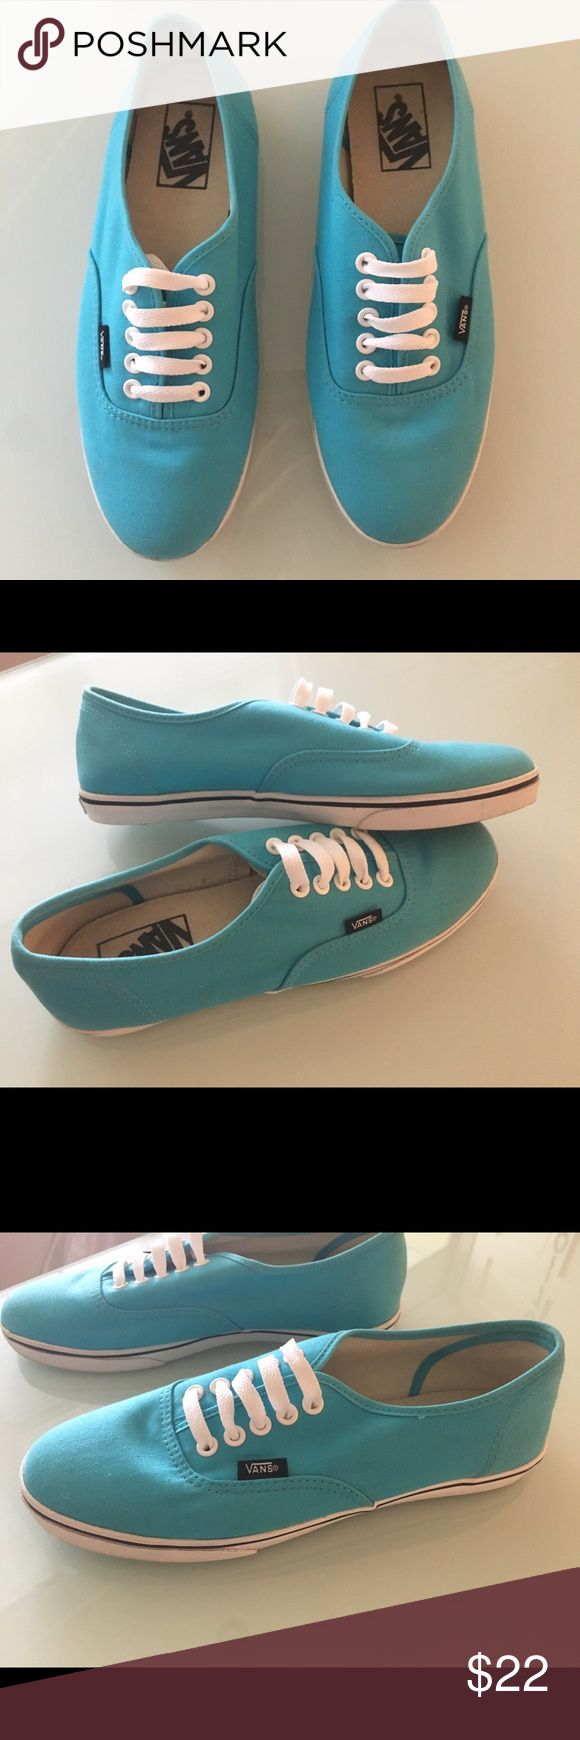 Vans Lo Pro Authentic Shoe in Turquoise Blue Vans Lo Pro Authentic Shoe in Turquoise Blue in size 8 woman's. Worn for about 2 hours until I realized they were too small for me. Perfect like new shoes with no defects or scuffs. Durable canvas upper in Aqua Blue colorway. Slim profile, low top silhouette. Double stitched in high abrasion areas. Vans micro-waffle tread. Cushioned footbed. Vulcanized outsole with True White foxing. Metal eyelets, slim White laces. Vans logo detailing at heel and…